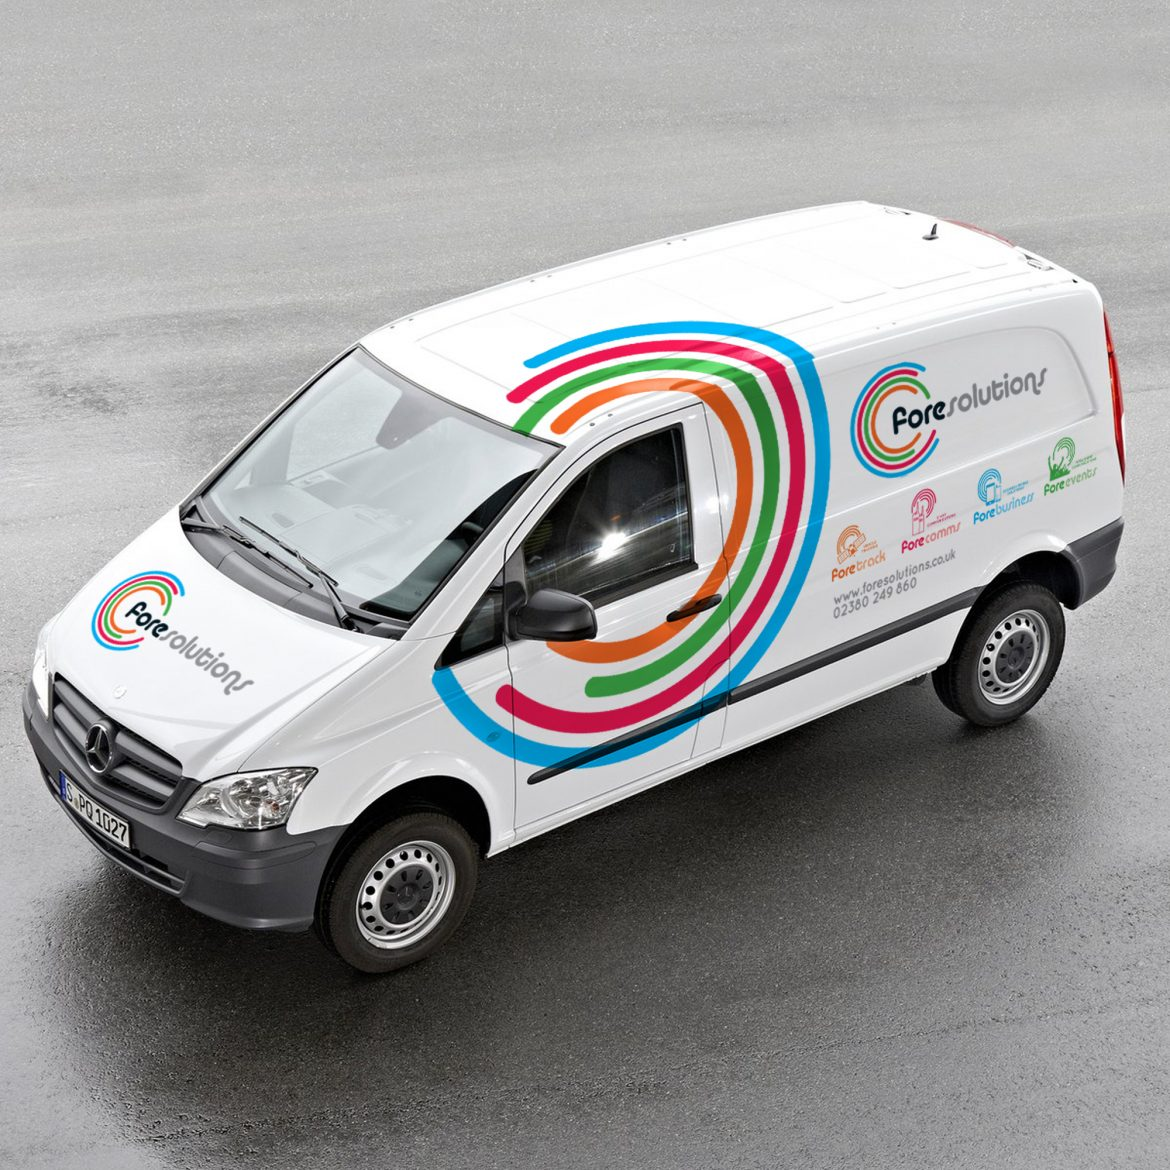 Fore Solutions Vehicle Graphics